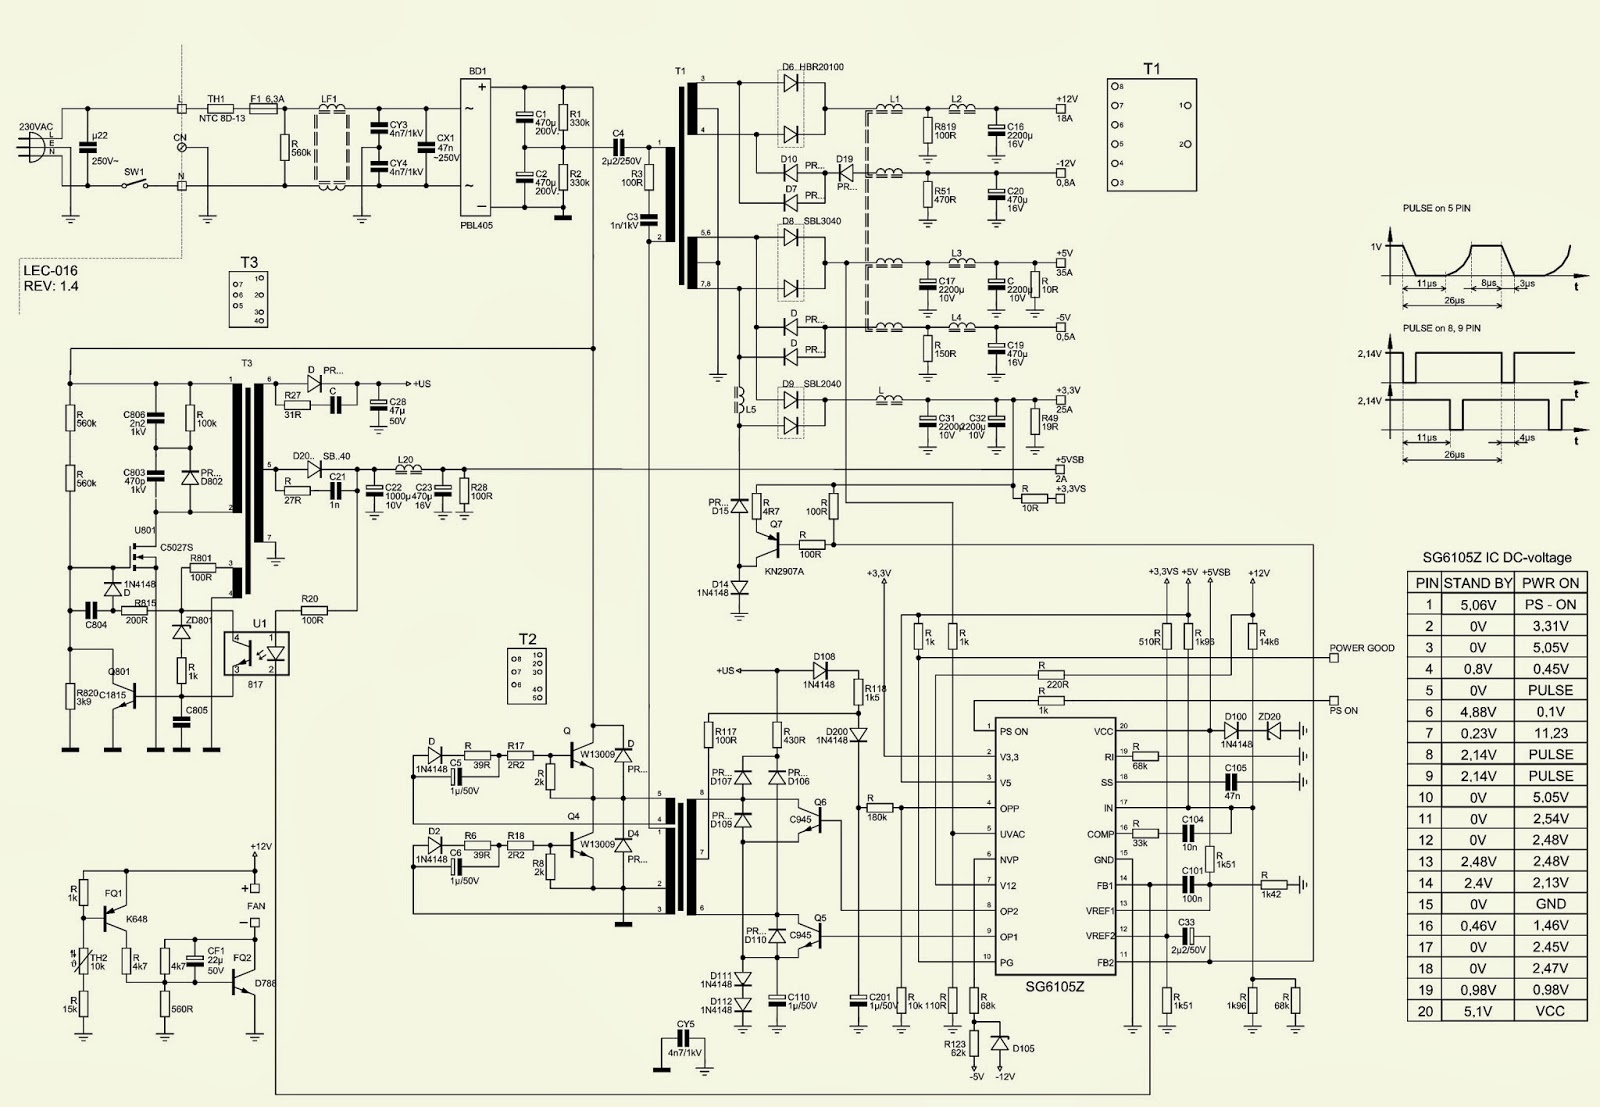 400 WATTS ATX POWER SUPPLY-P4 - DESKTOP COMPUTERS - SCHEMATIC ...